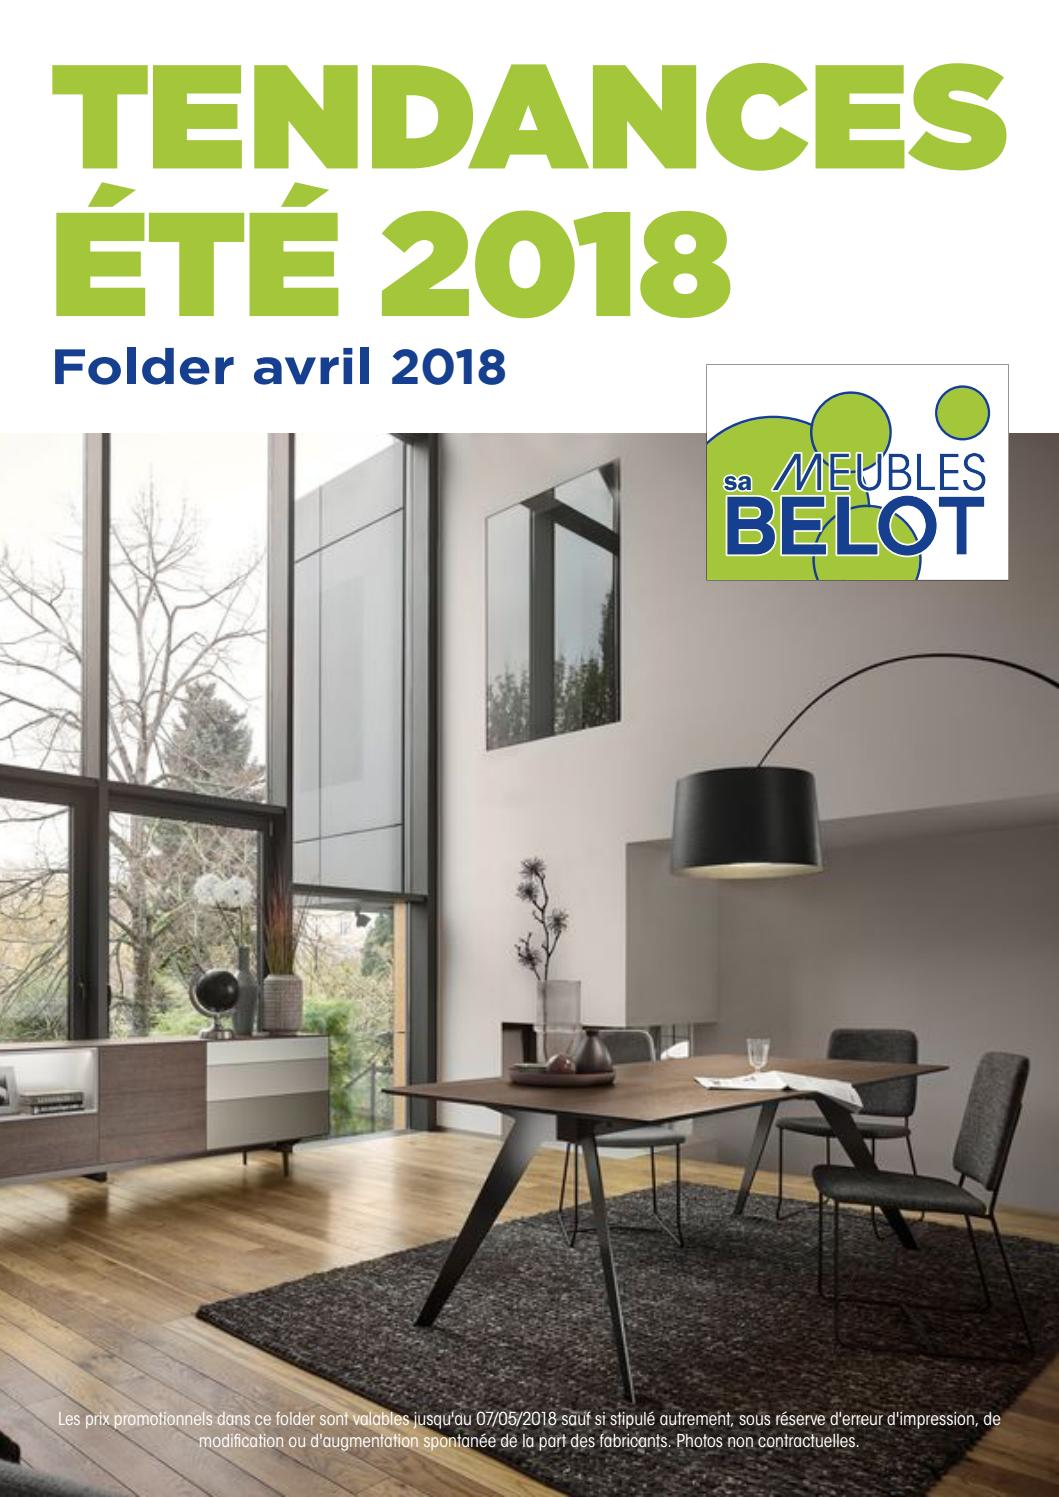 Pub Meubles Belot Belot Folder Tendances Avril 2018 By Meubles Belot Sa Issuu